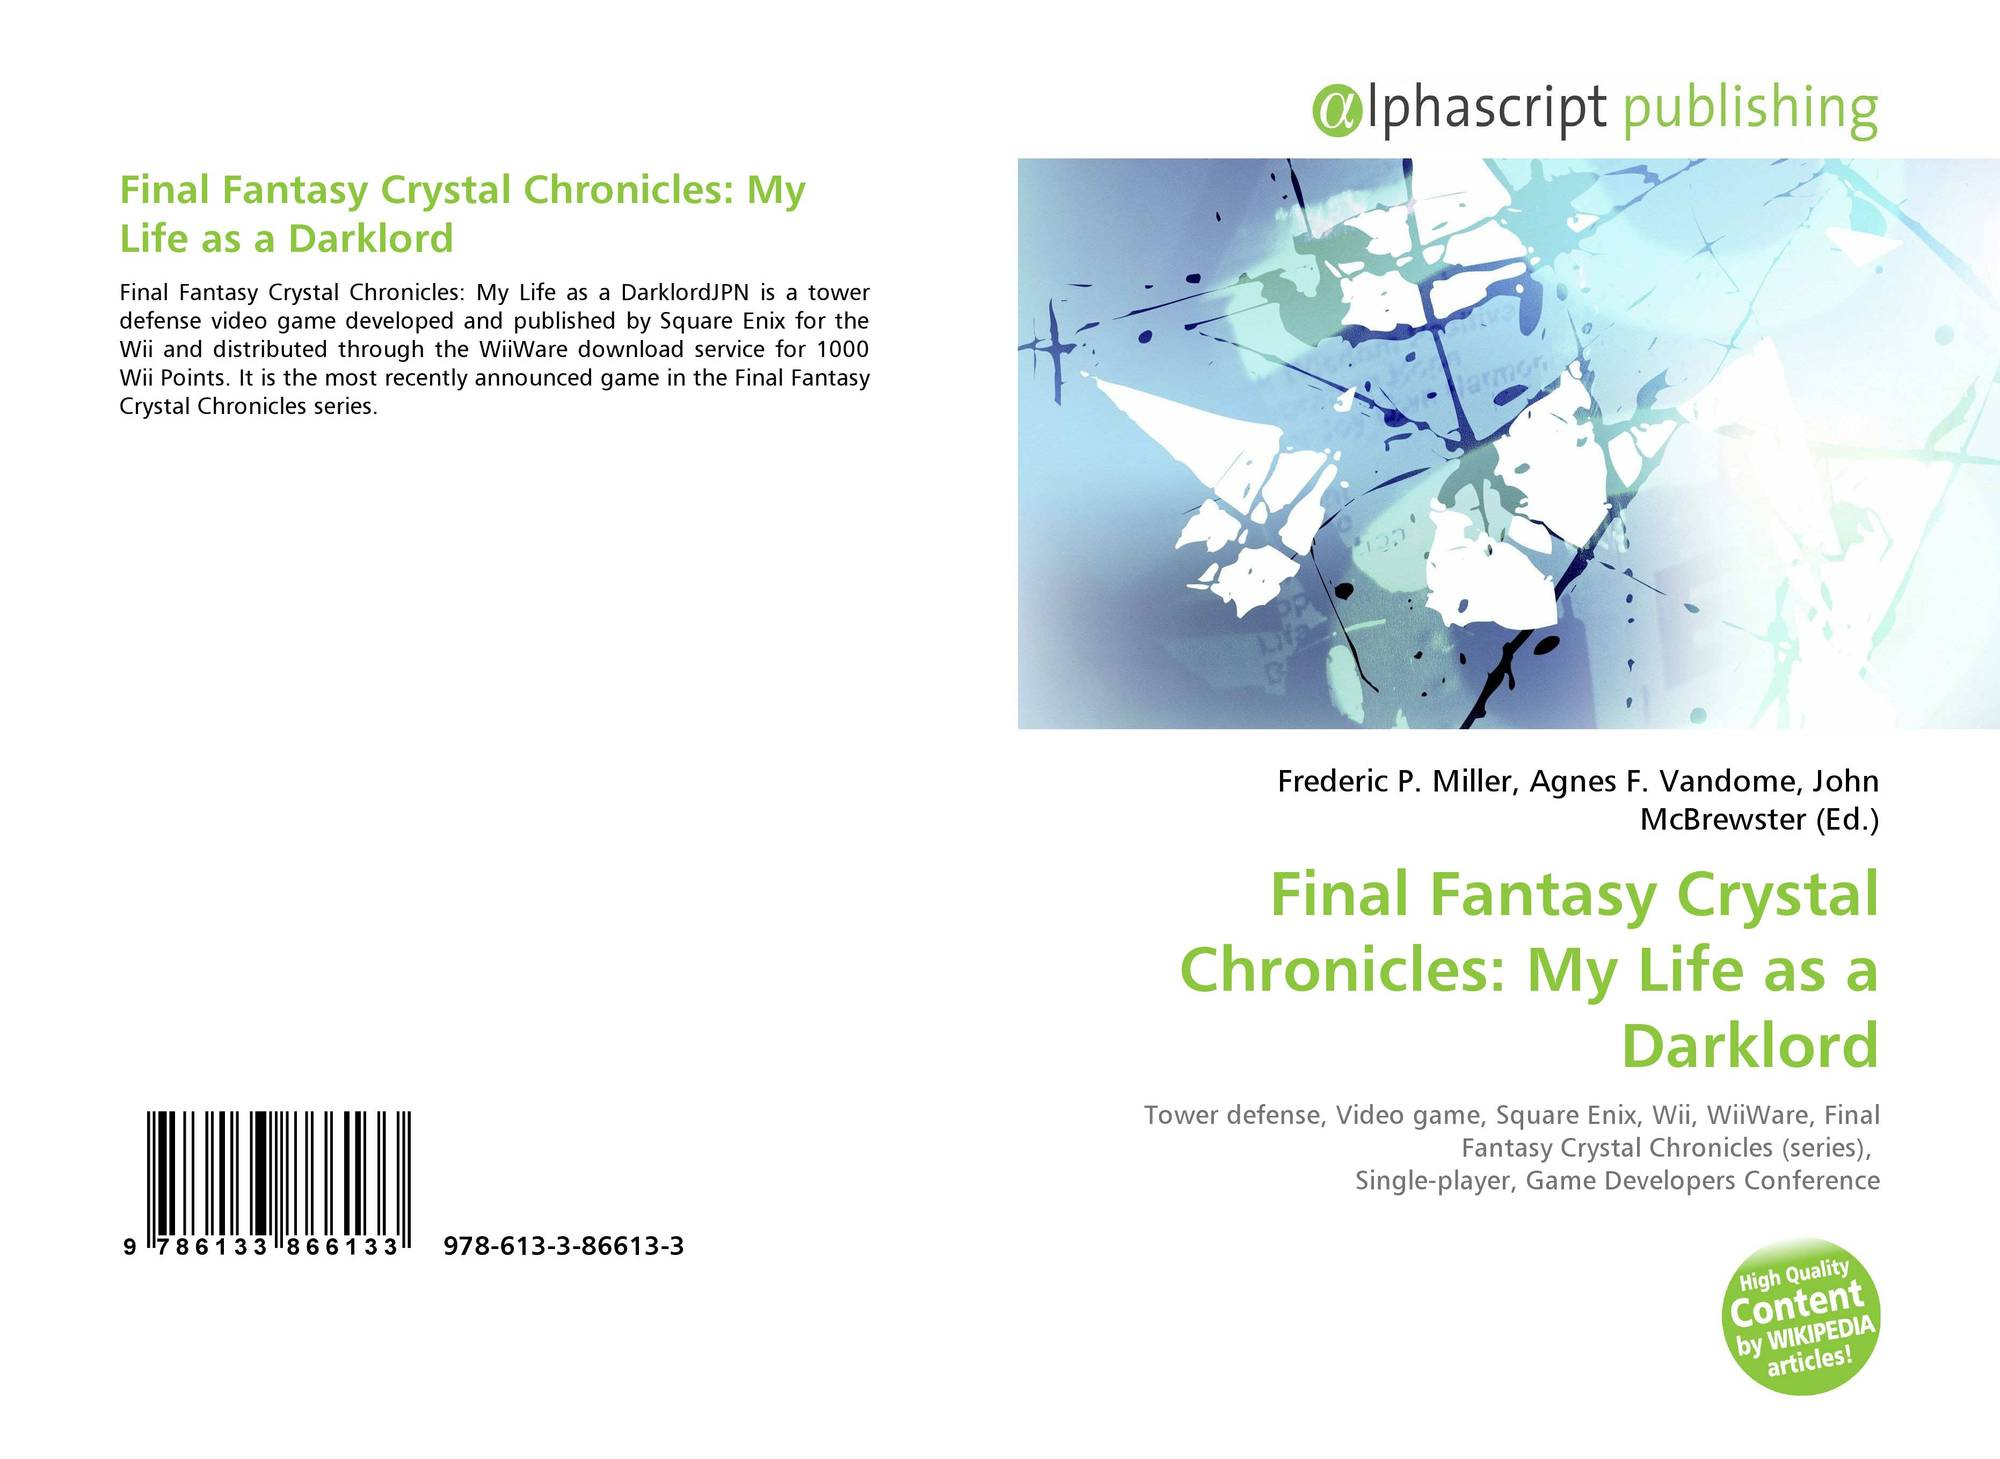 Final Fantasy Crystal Chronicles: My Life as a Darklord, 978